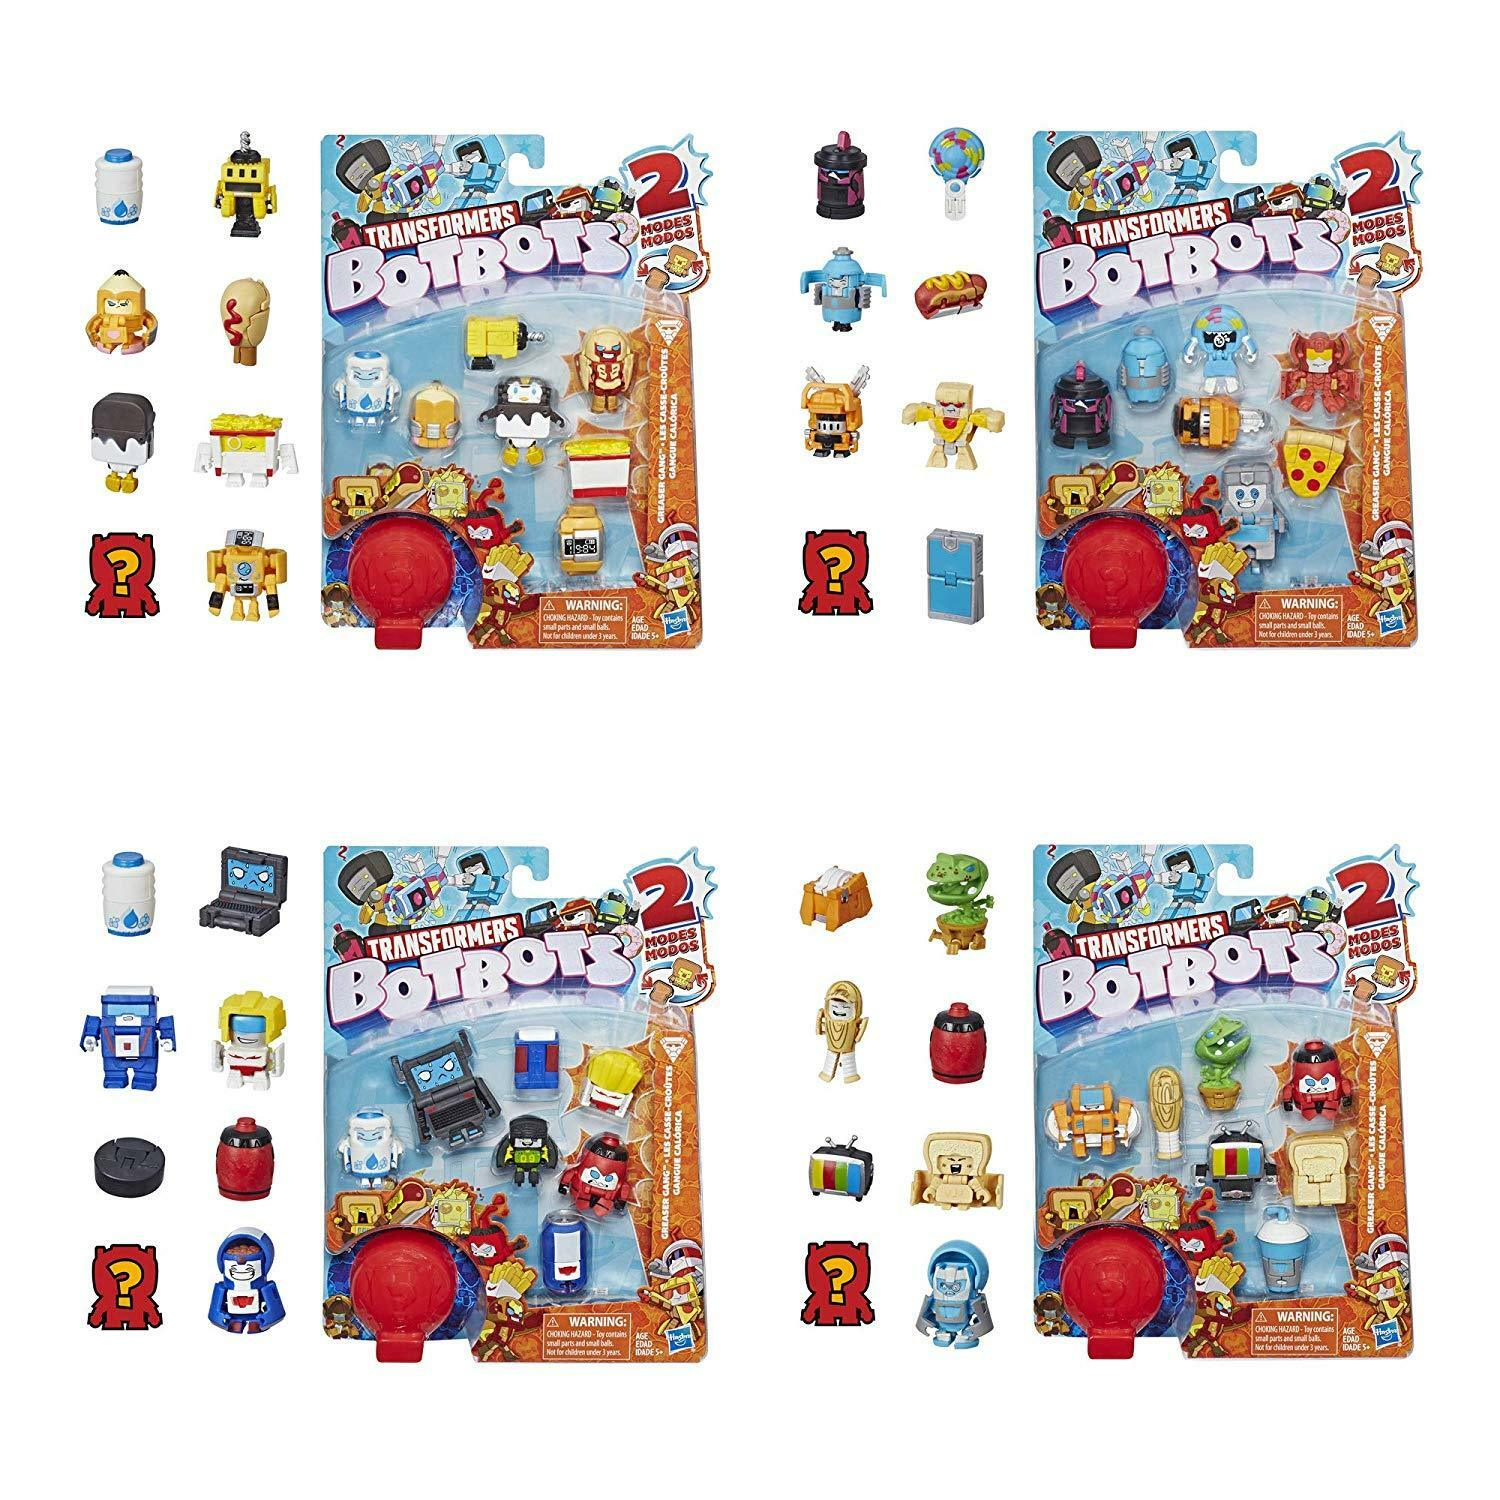 Transformers Botbots Series 1 Mystery 2in1 cifras   Greaser Gang 8Pack x4 nuovo